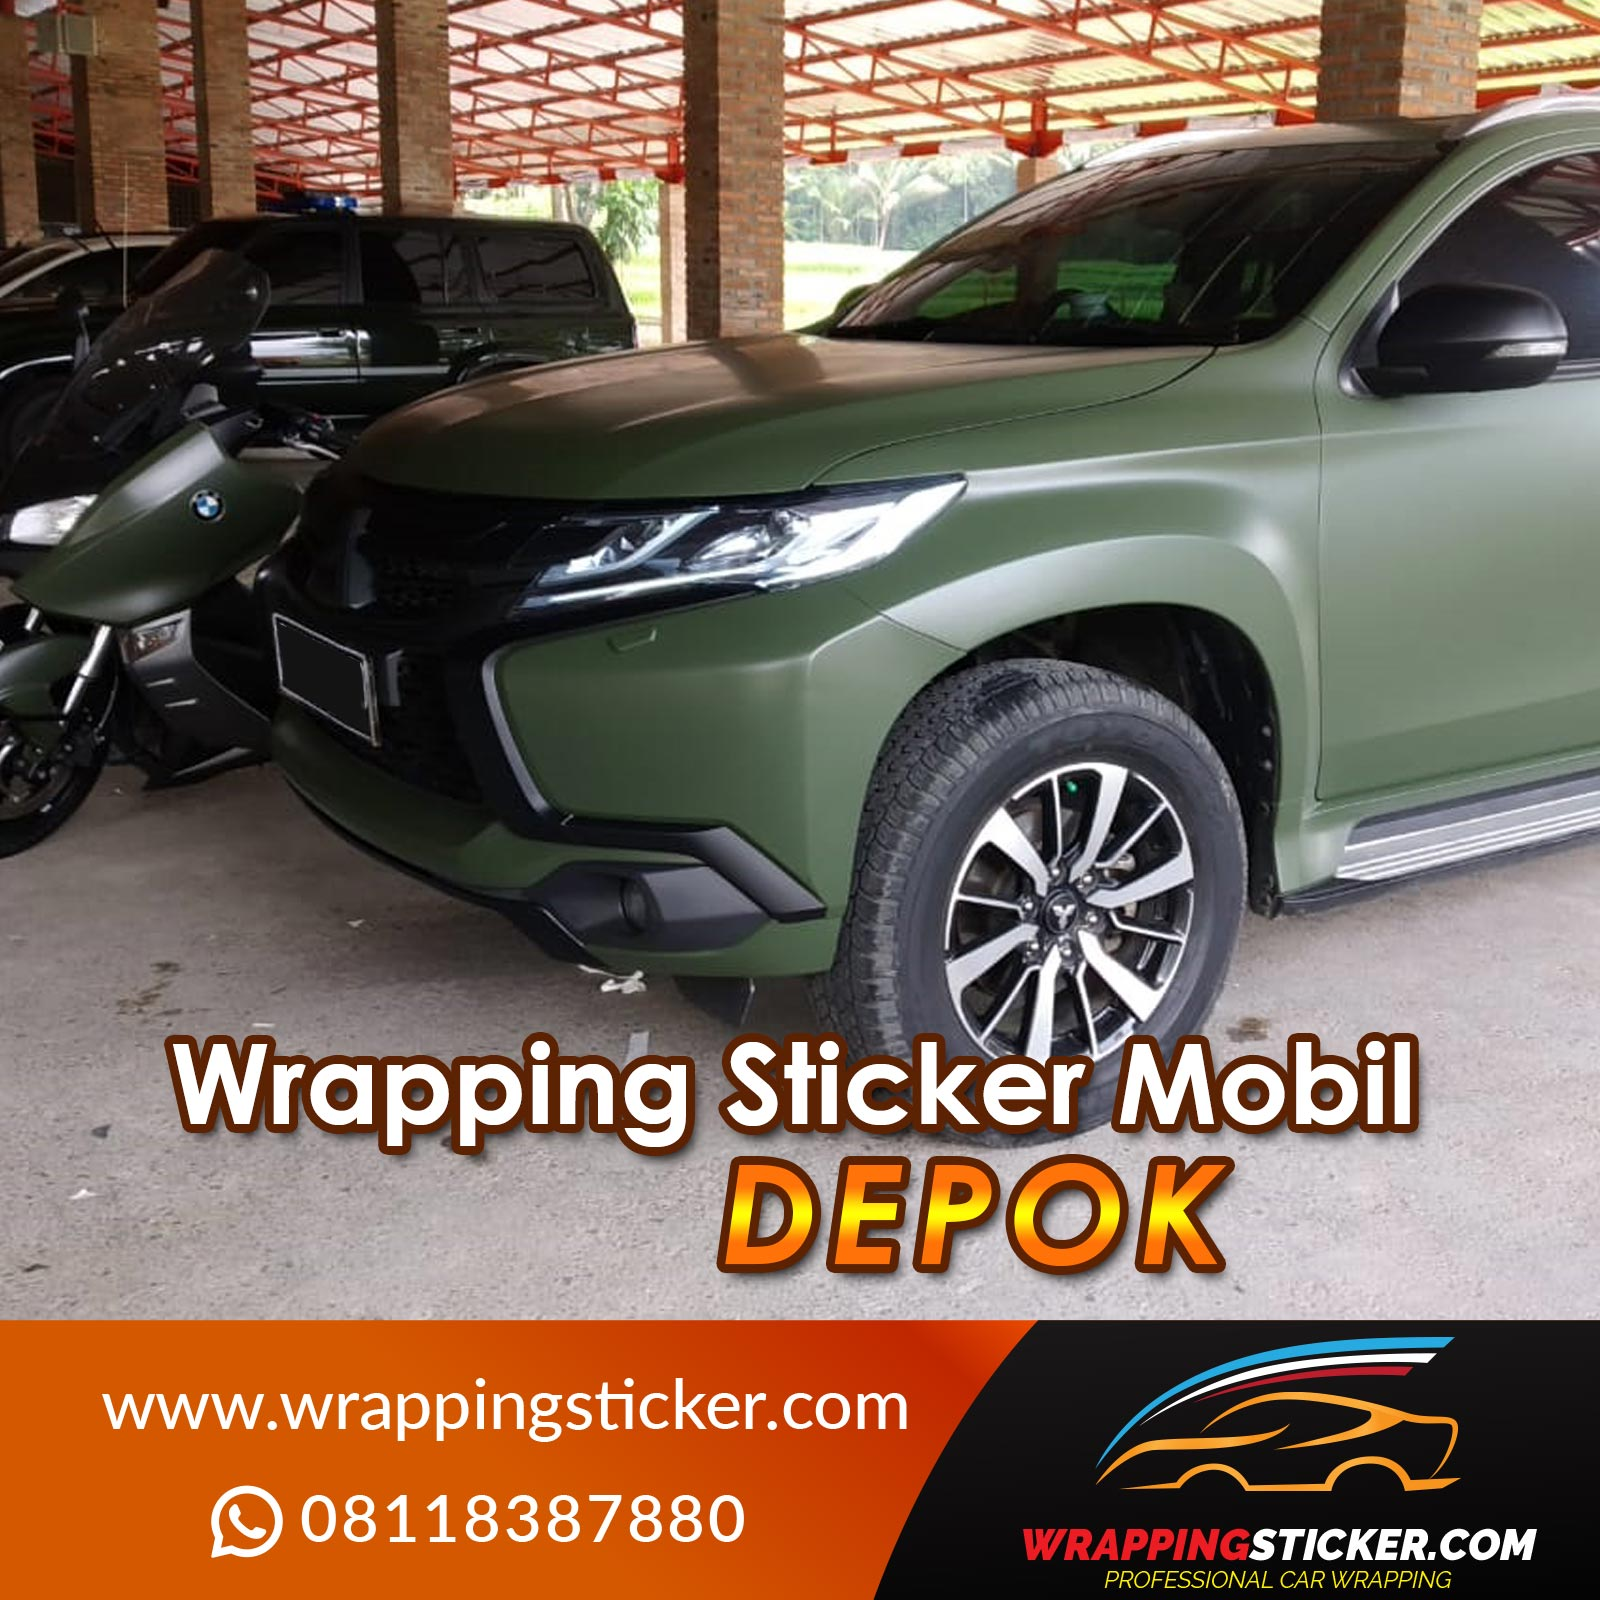 Wrapping Sticker Mobil Depok